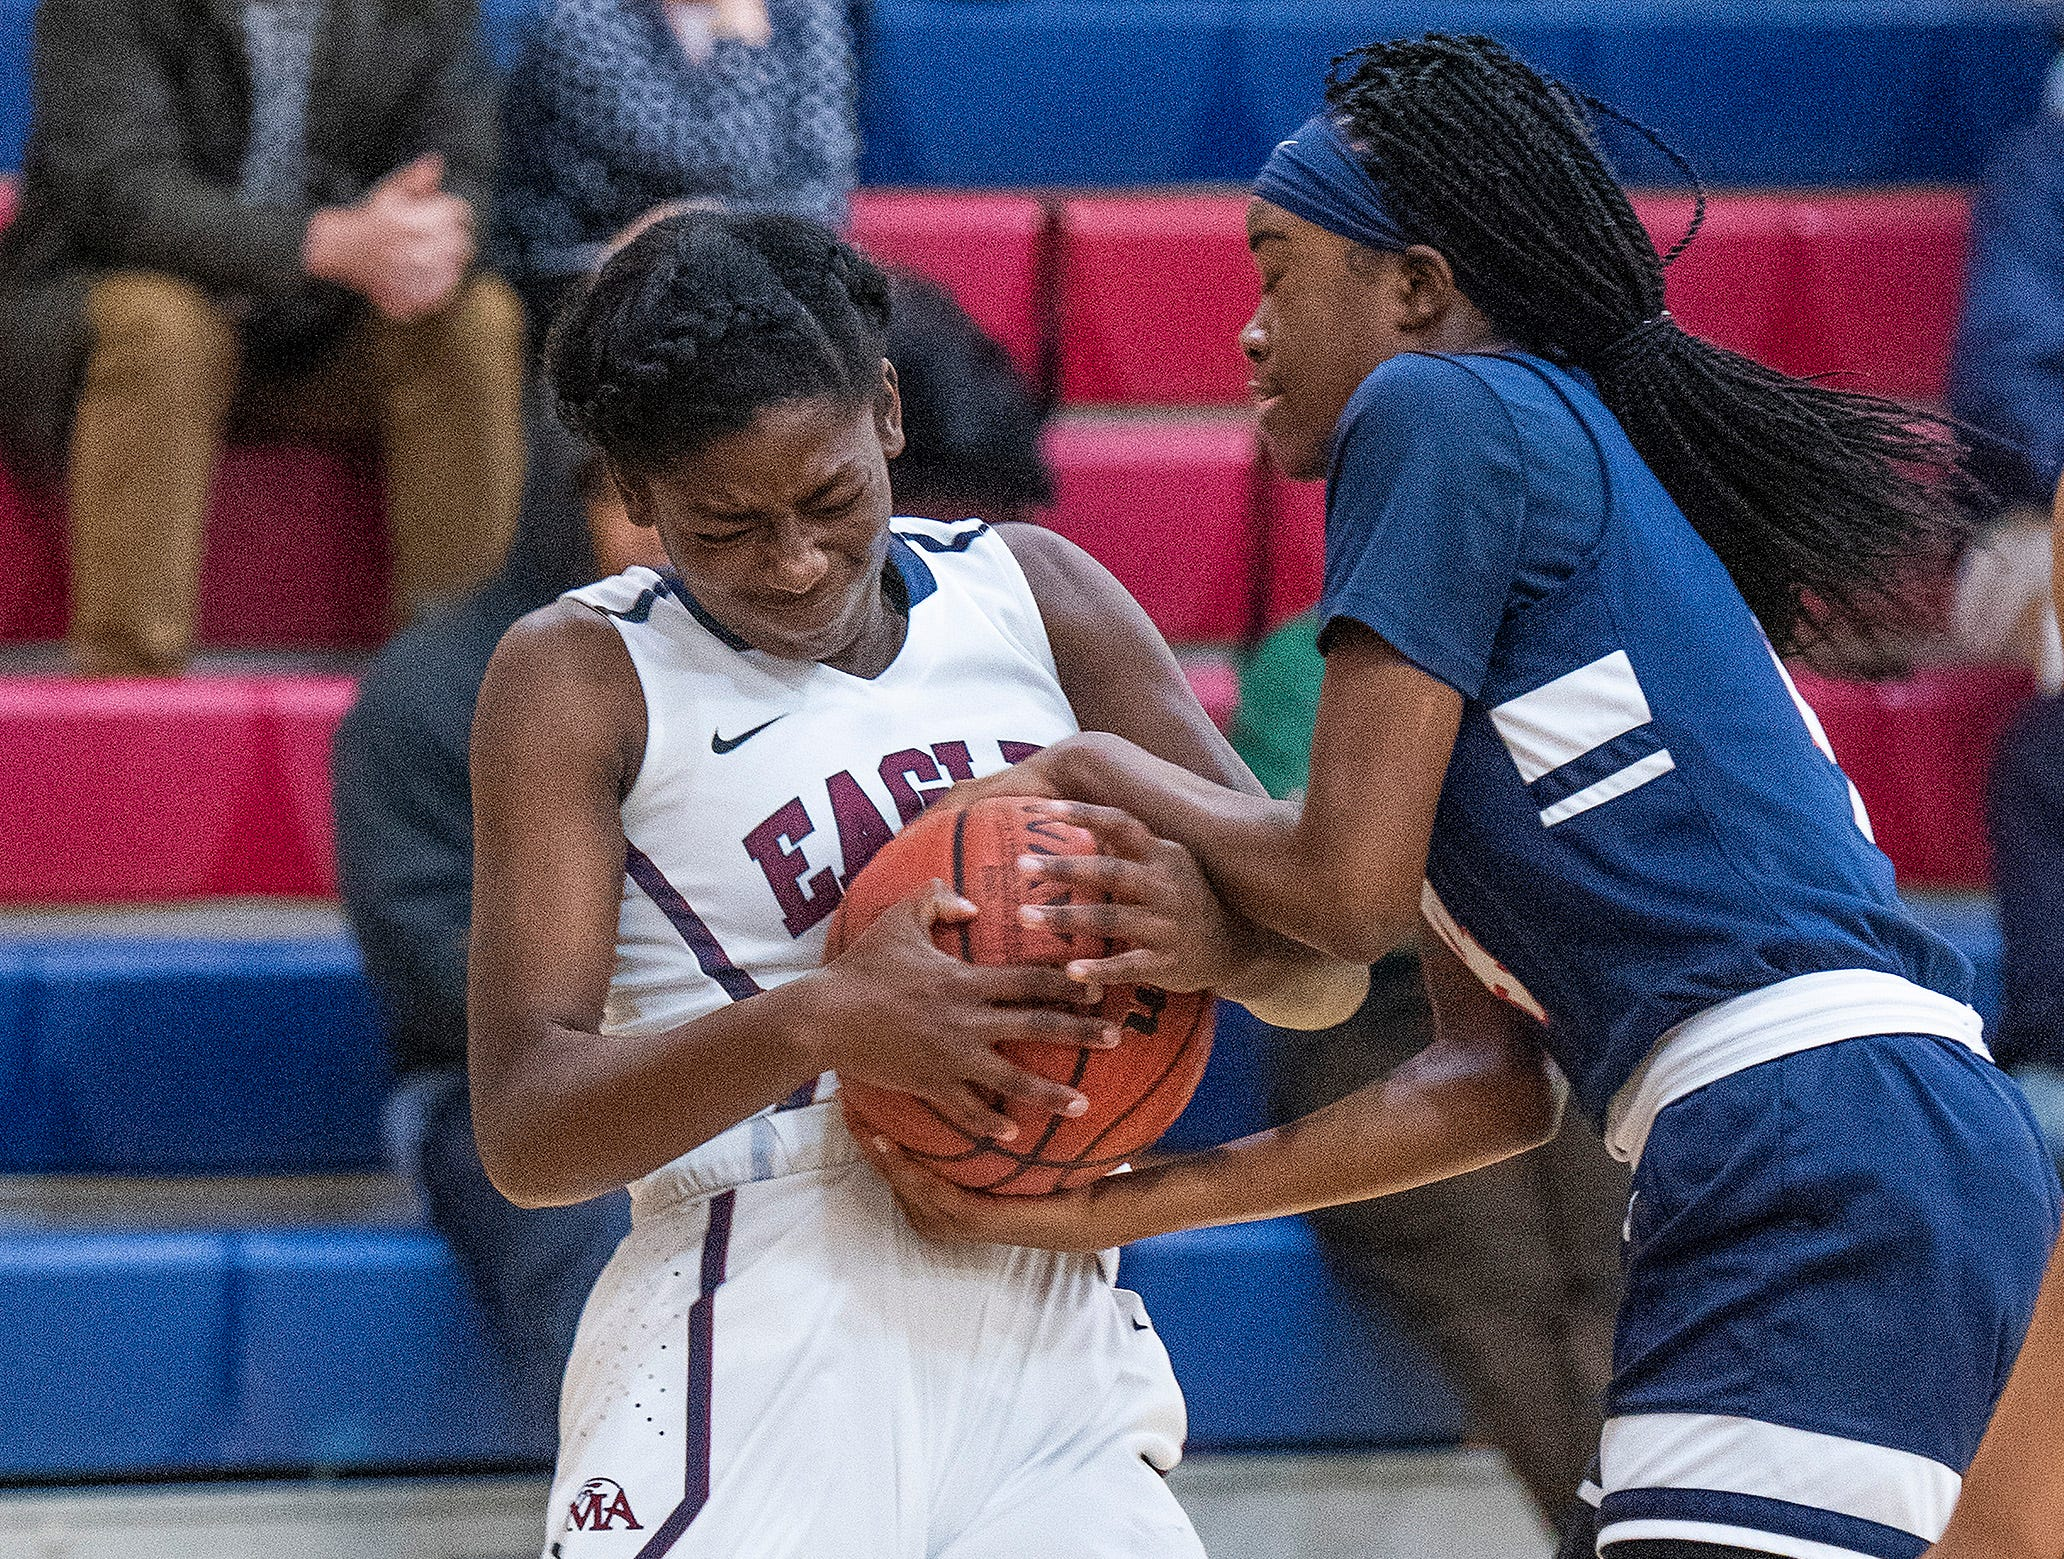 Montgomery Academy's Katherine Yelverton (12) and Pike Road's Aaliyah Manora (4) fight for the ball on the MA campus in Montgomery, Ala., on Friday February 8, 2019.